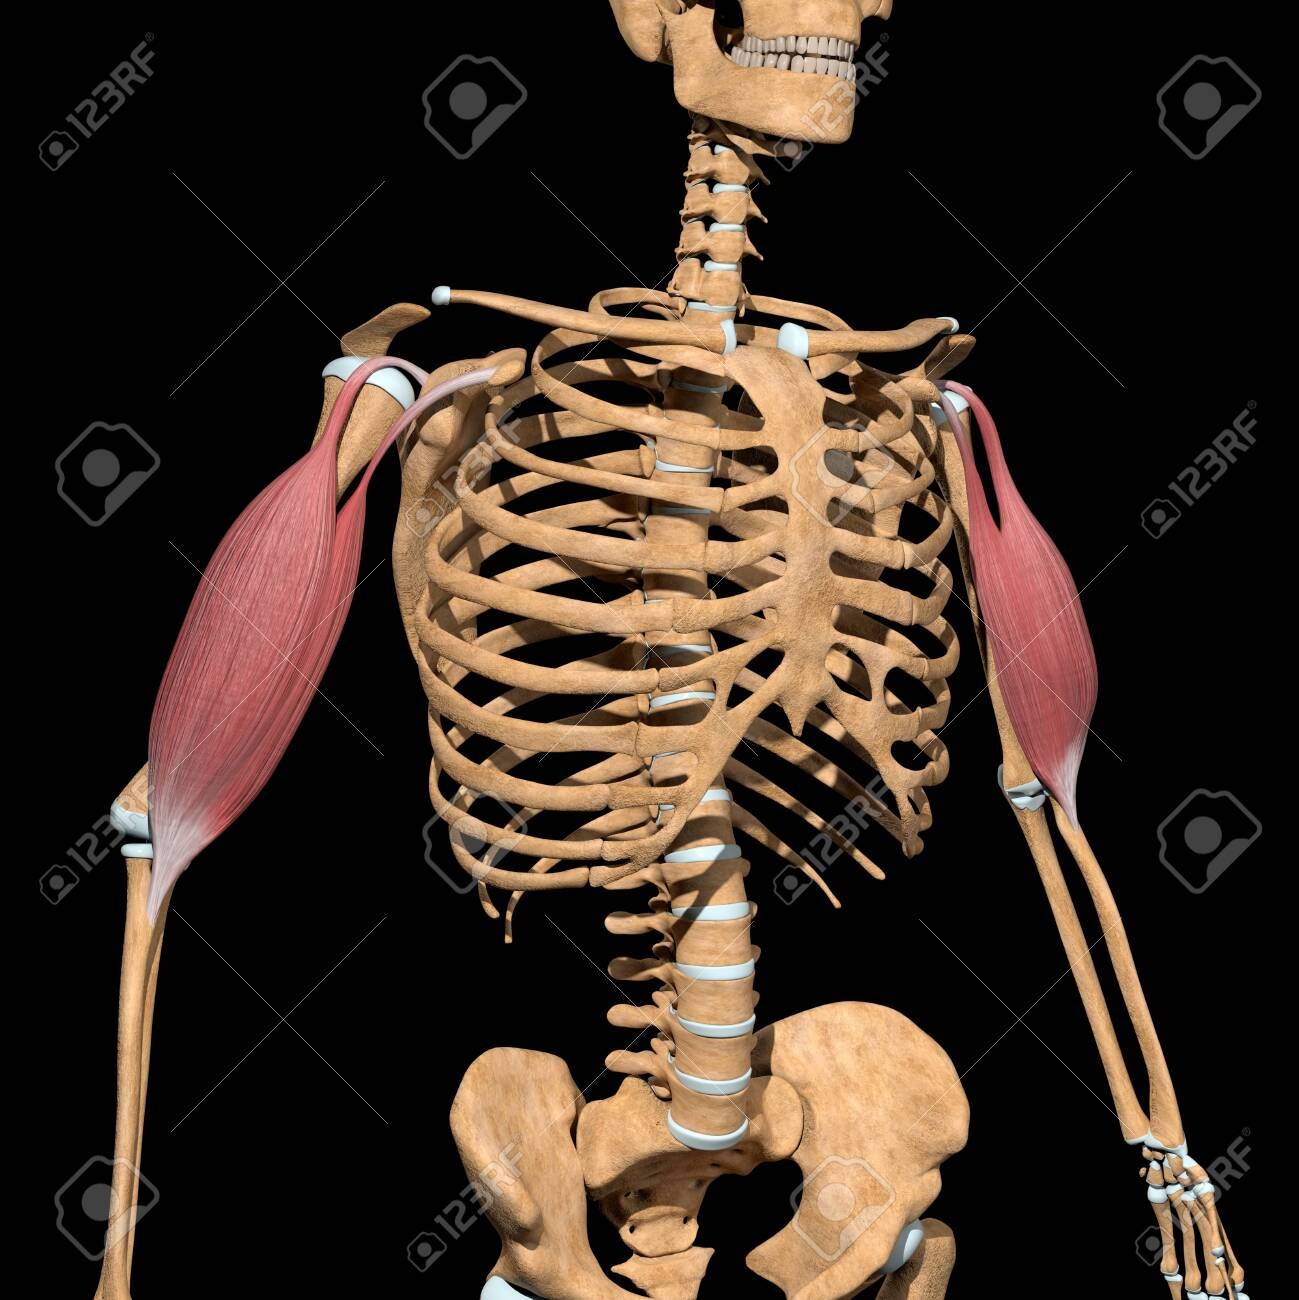 This 3d illustration shows the biceps muscles on skeleton - 142009968